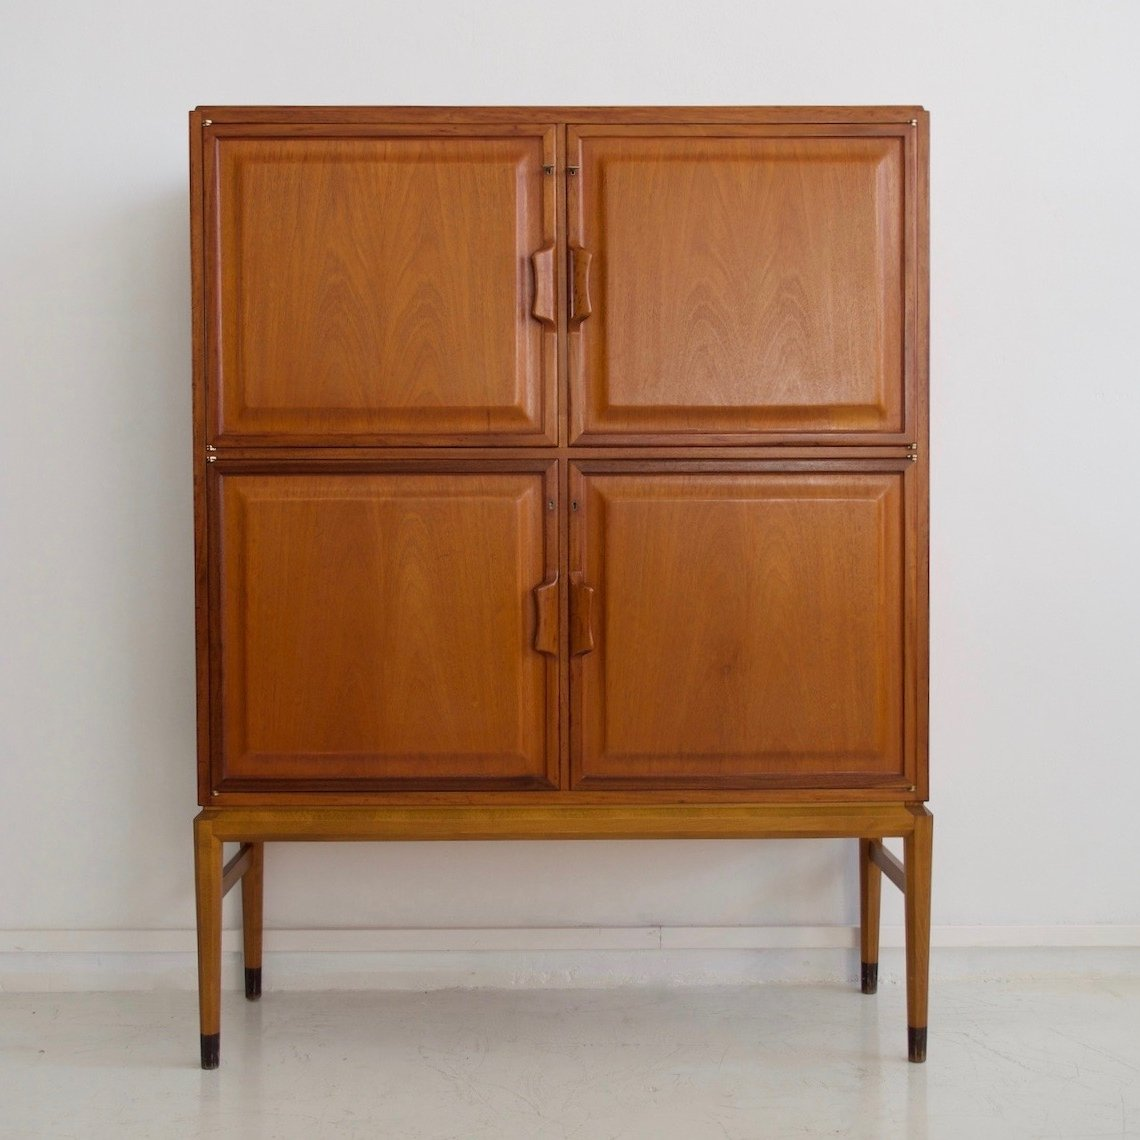 Axel Larsson Mahogany Cabinet With Four Frontal Doors